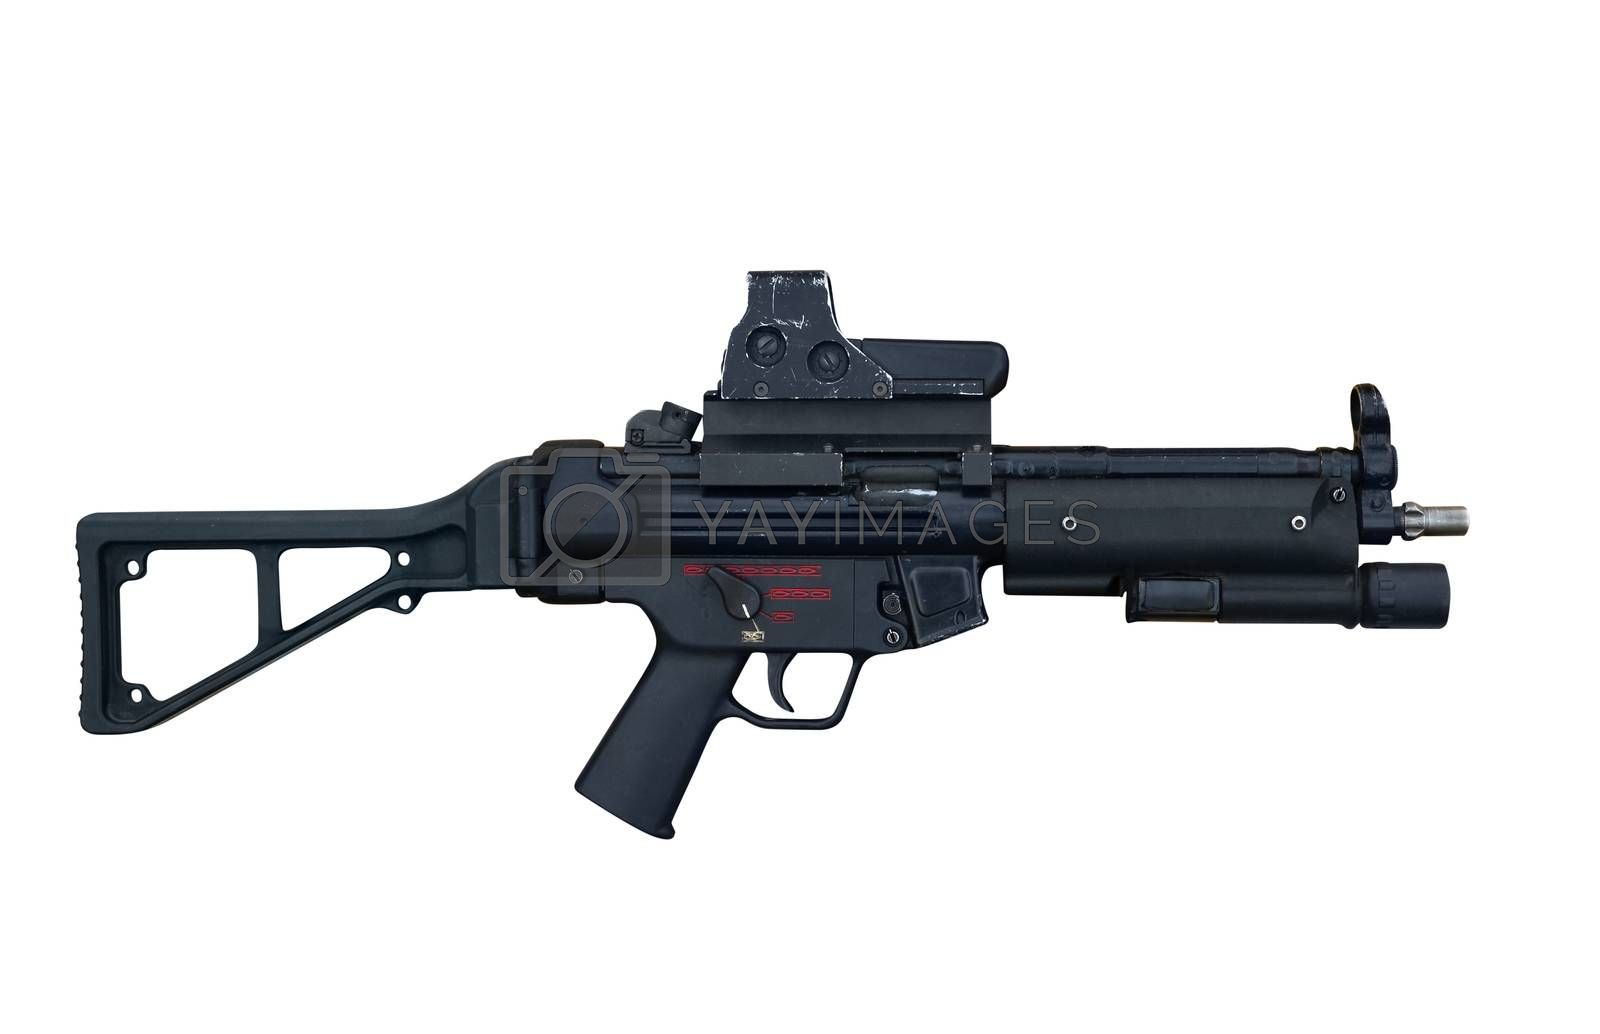 German  special forces machine gun Heckler and Koch MP5 E6 calliber 9 mm. Isolated with path on white background.